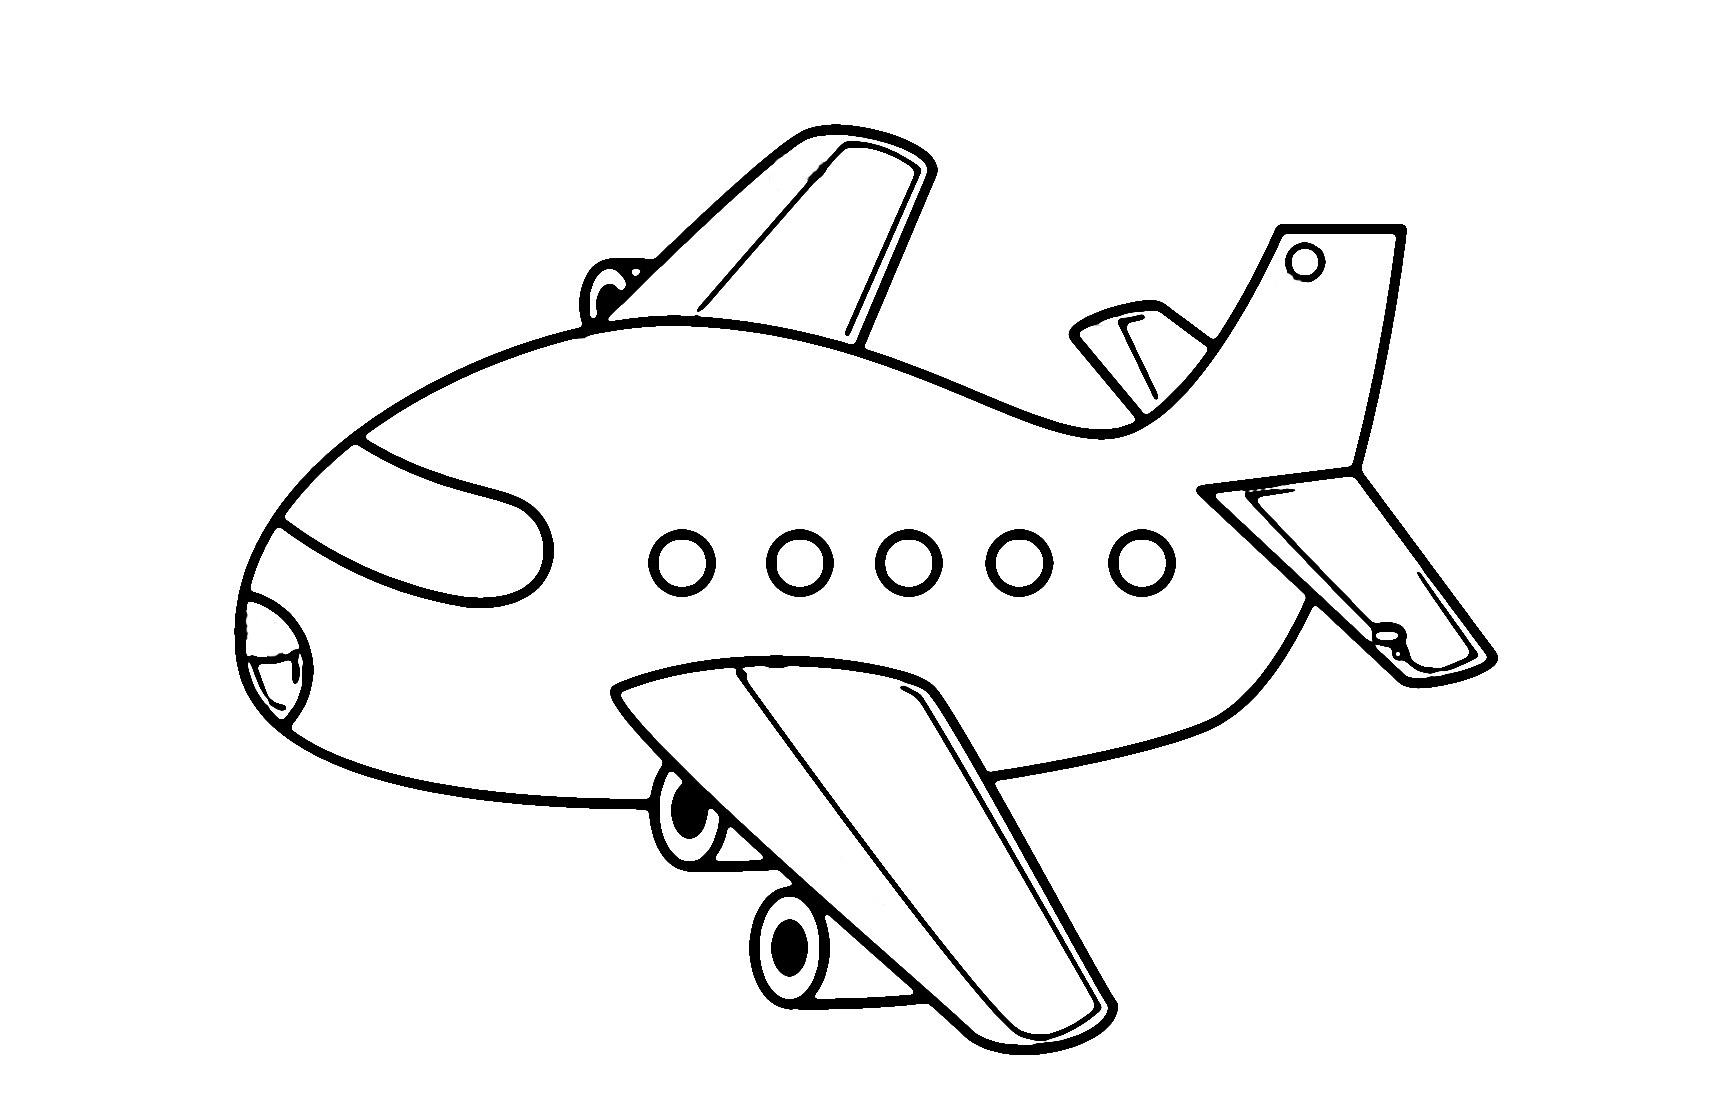 Cartoon airplane coloring page